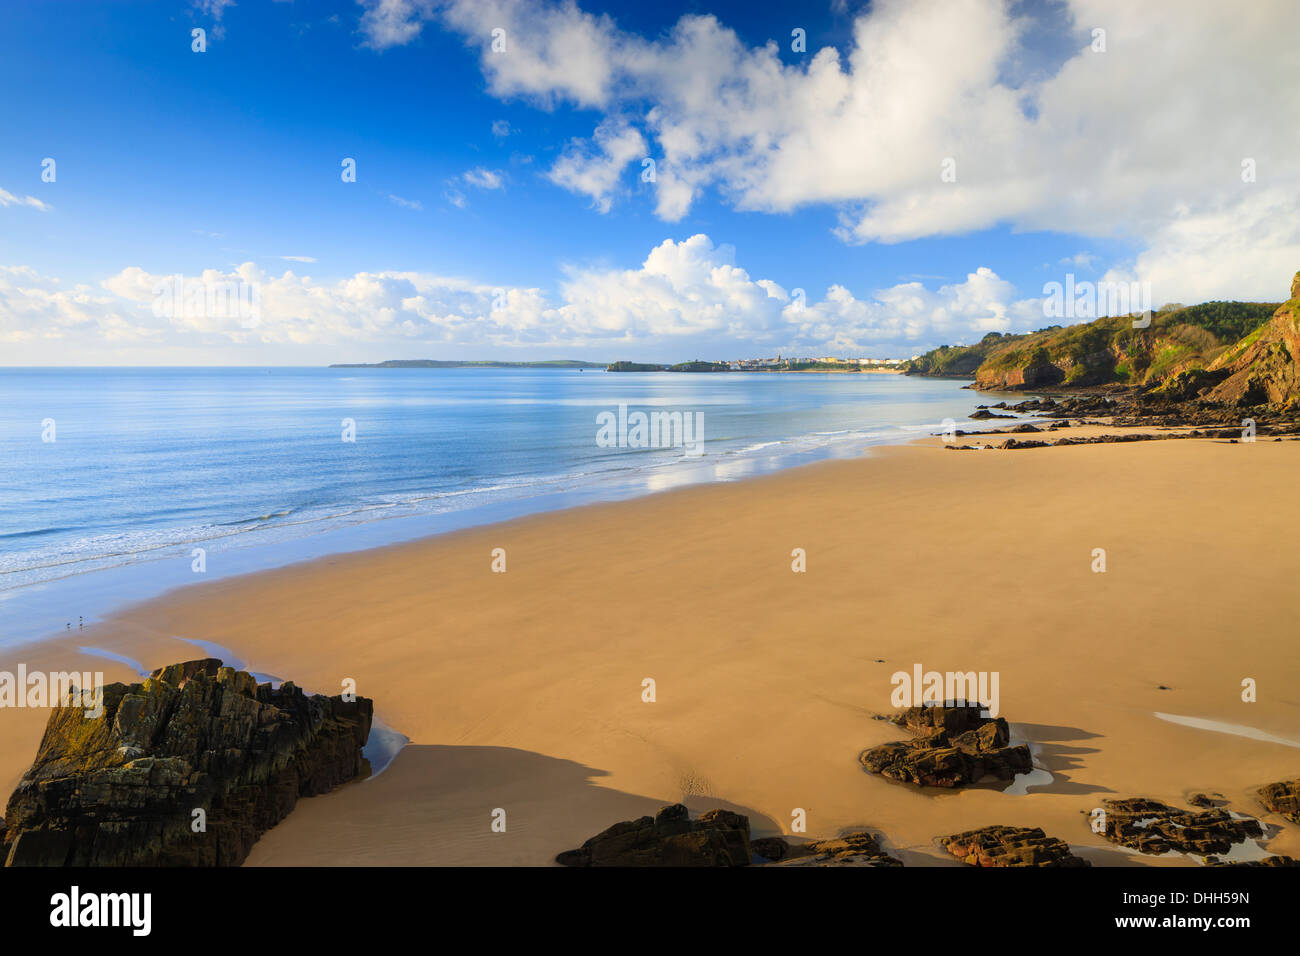 Monkstone Beach Tenby Pembrokeshire Wales (with Tenby in b/grd) - Stock Image